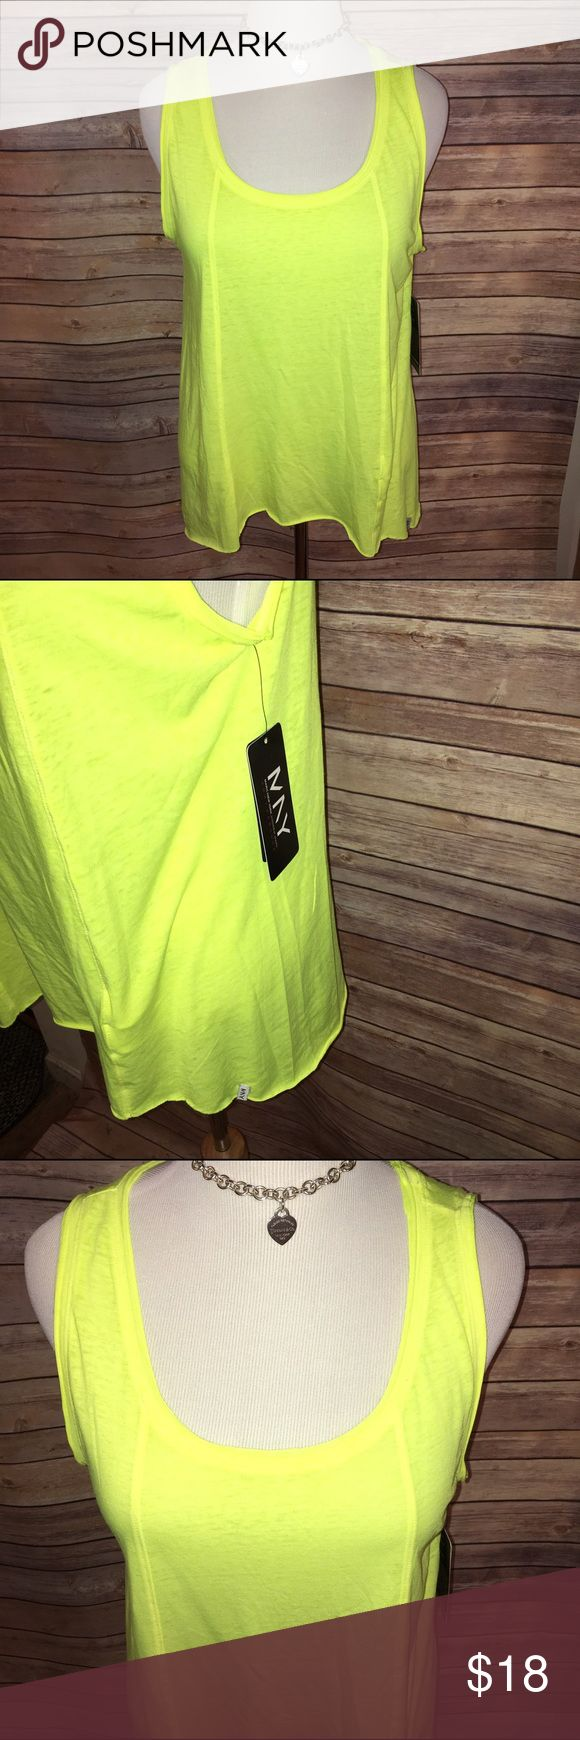 BNWT Neon Yellow Marc New York Loose Fit Tank Super colorful, bright and fun! Awesome shade of neon yellow. Super soft and flowy. BNWT, no flaws. Excellent quality and condition. Check out my other listings to bundle and save % 😎! Marc New York Tops Tank Tops